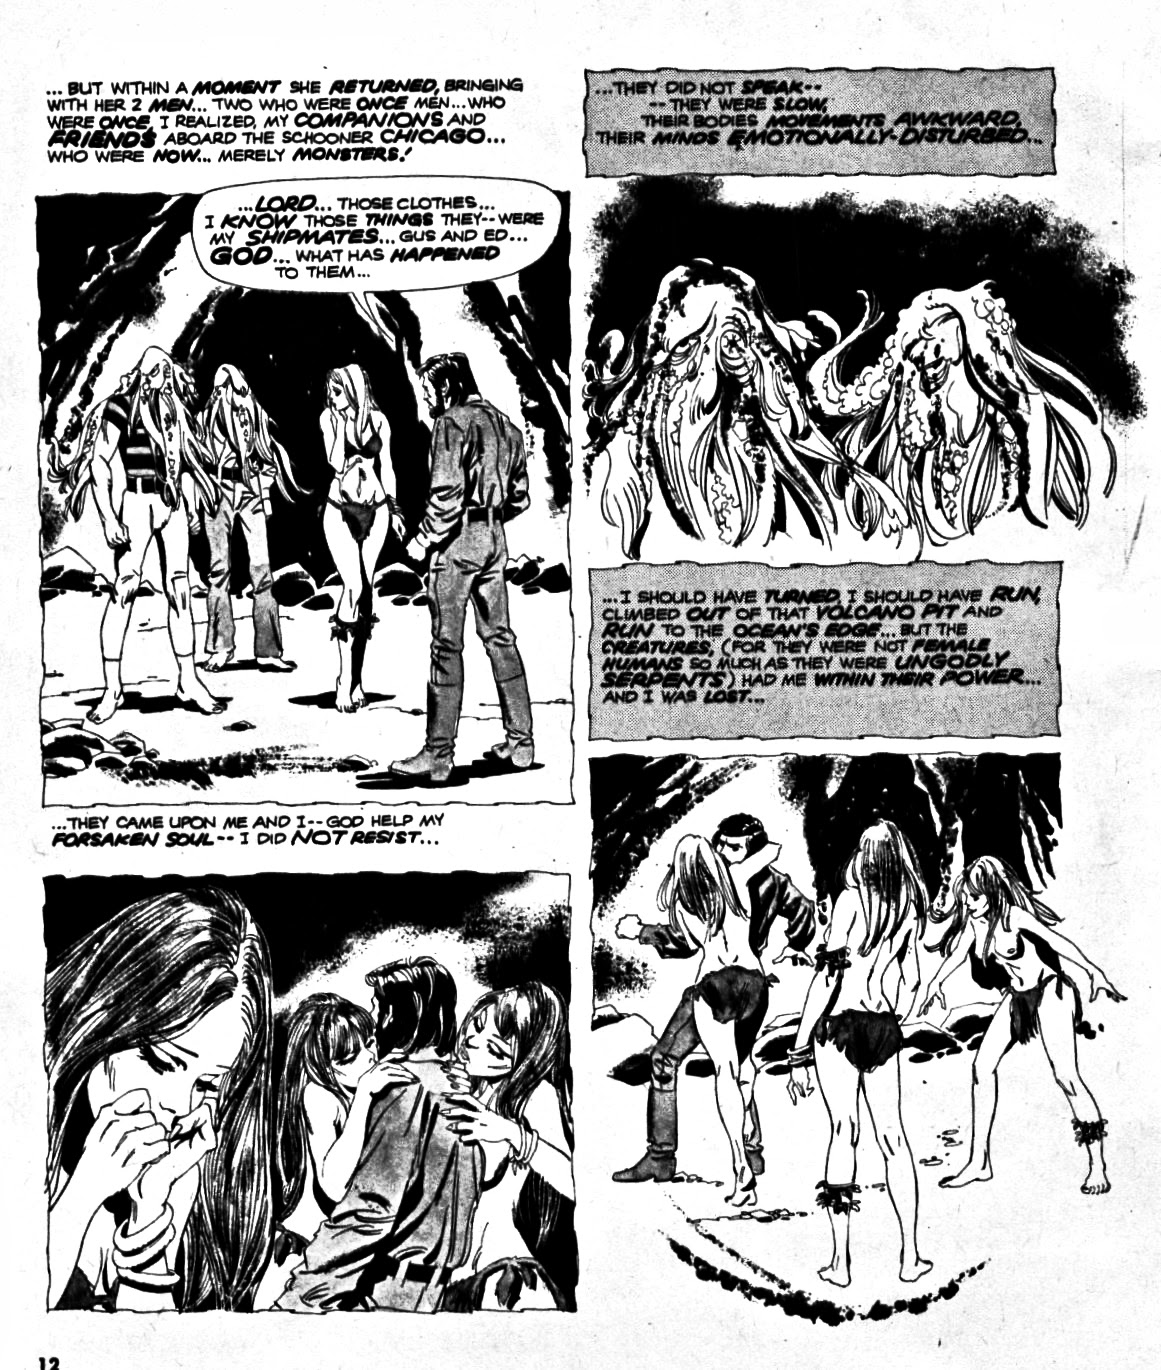 Scream (1973) issue 7 - Page 12